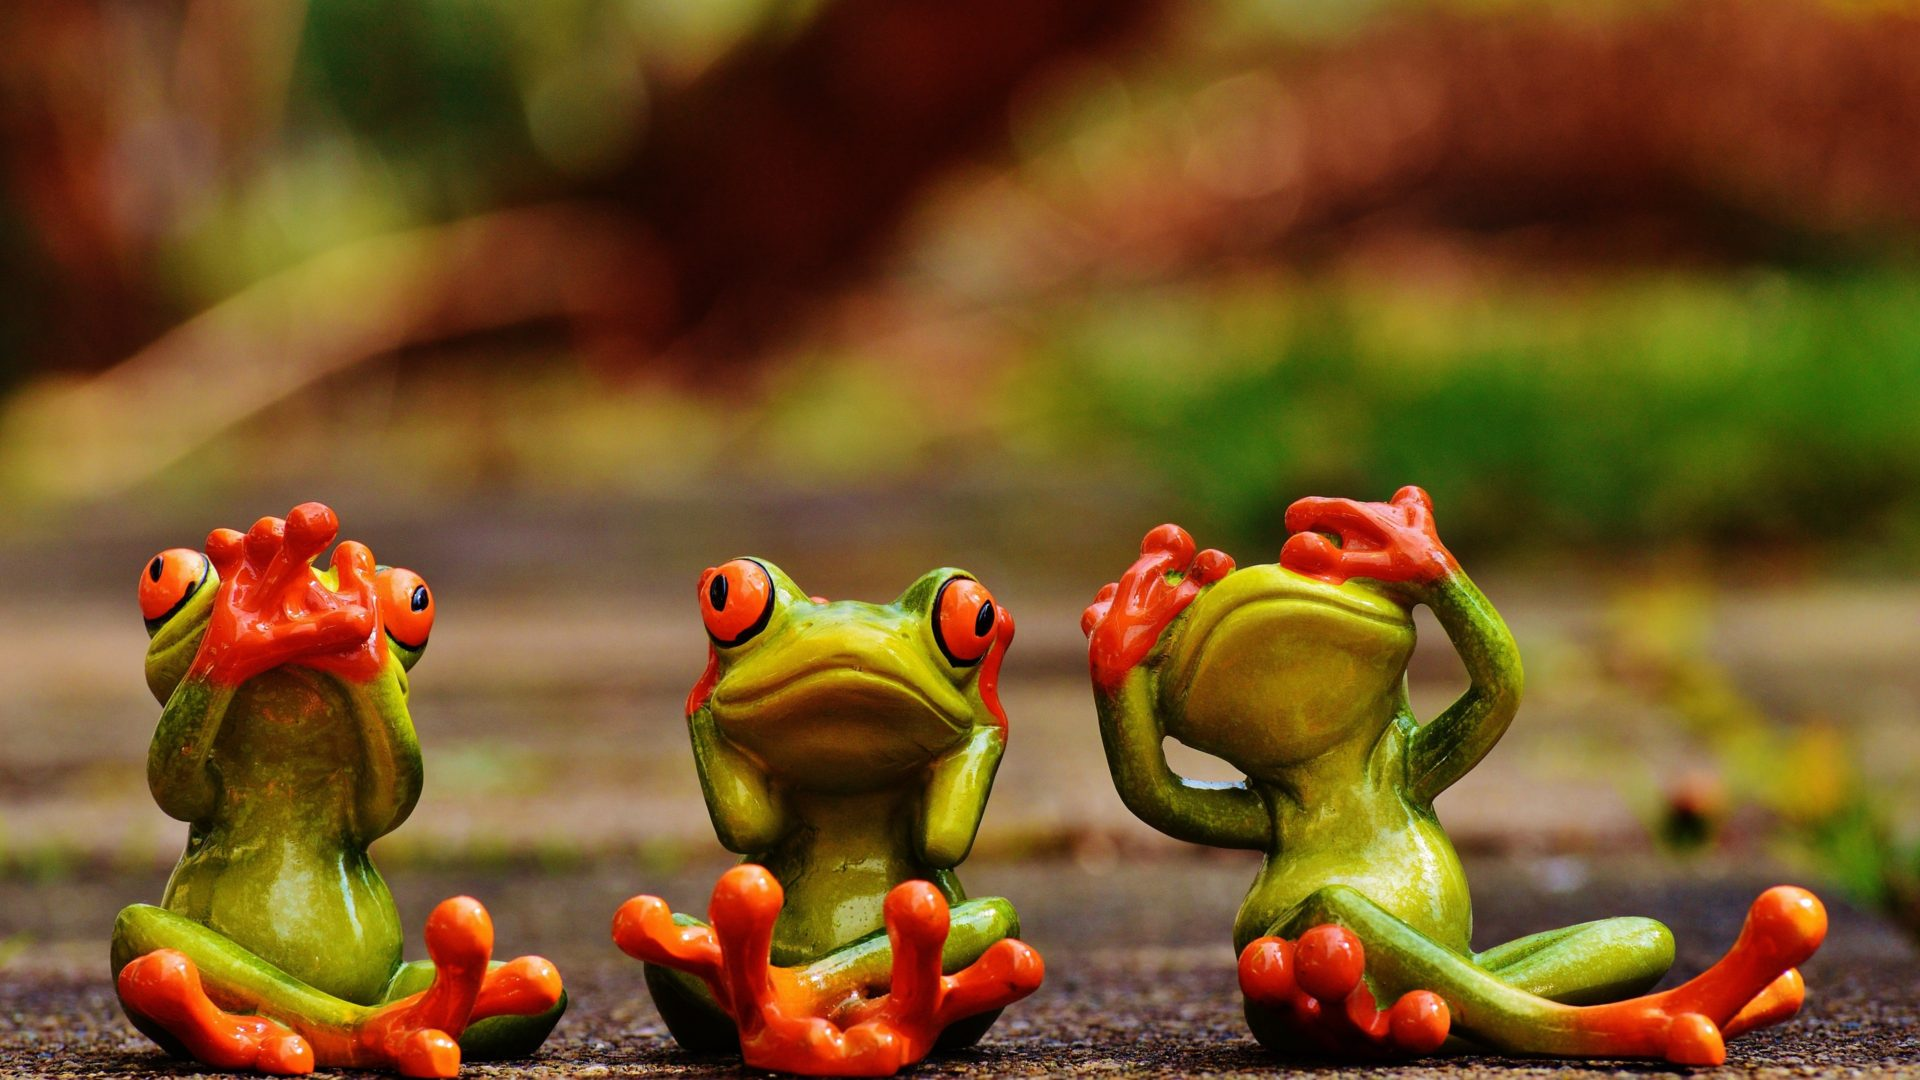 Cute Lock Screen Wallpaper For Ipad Cute Green Frogs With Red Eyes 3 D Wallpaper Hd 3840x2160